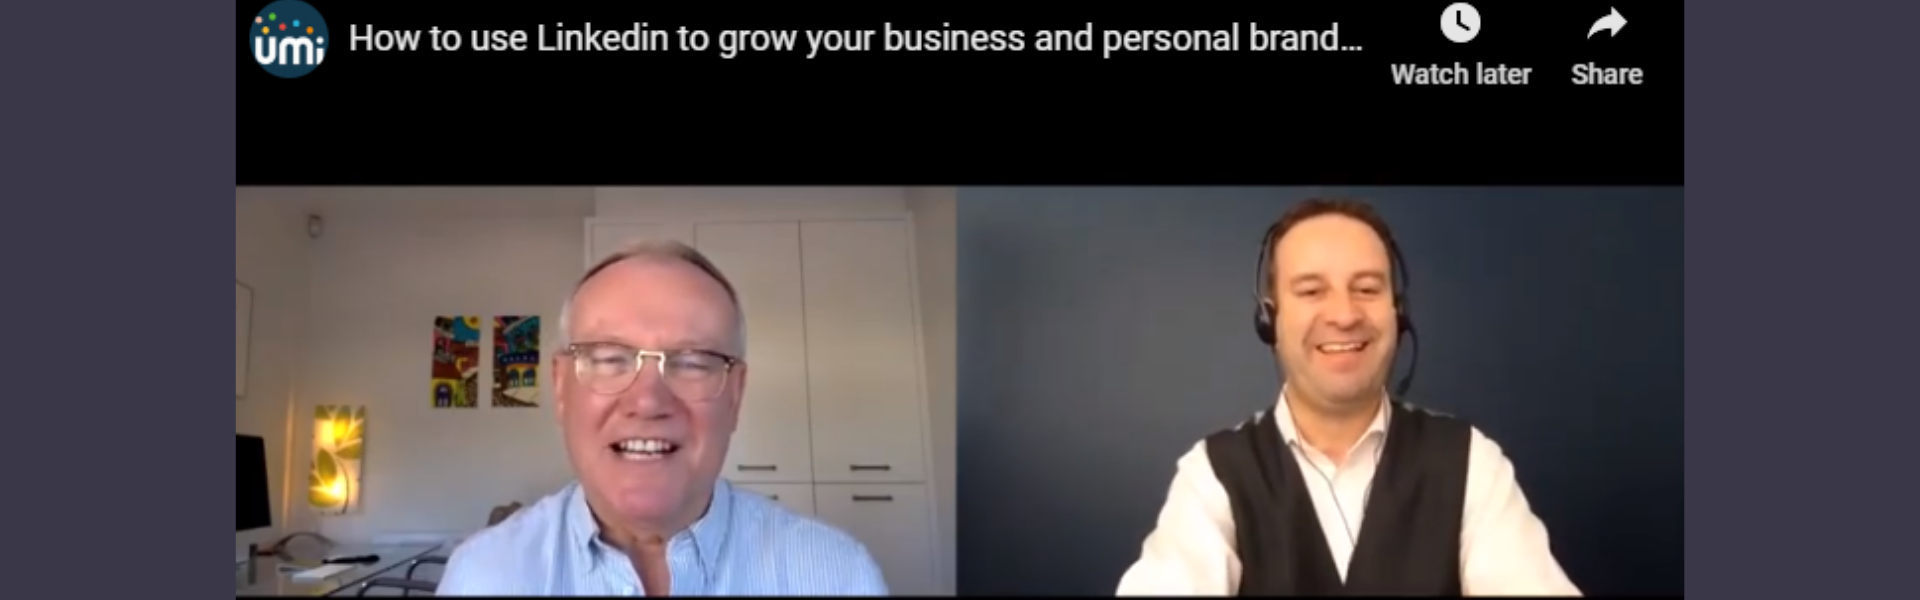 How to Use LinkedIn for Business Growth UMi webinar with Nigel Cliffe